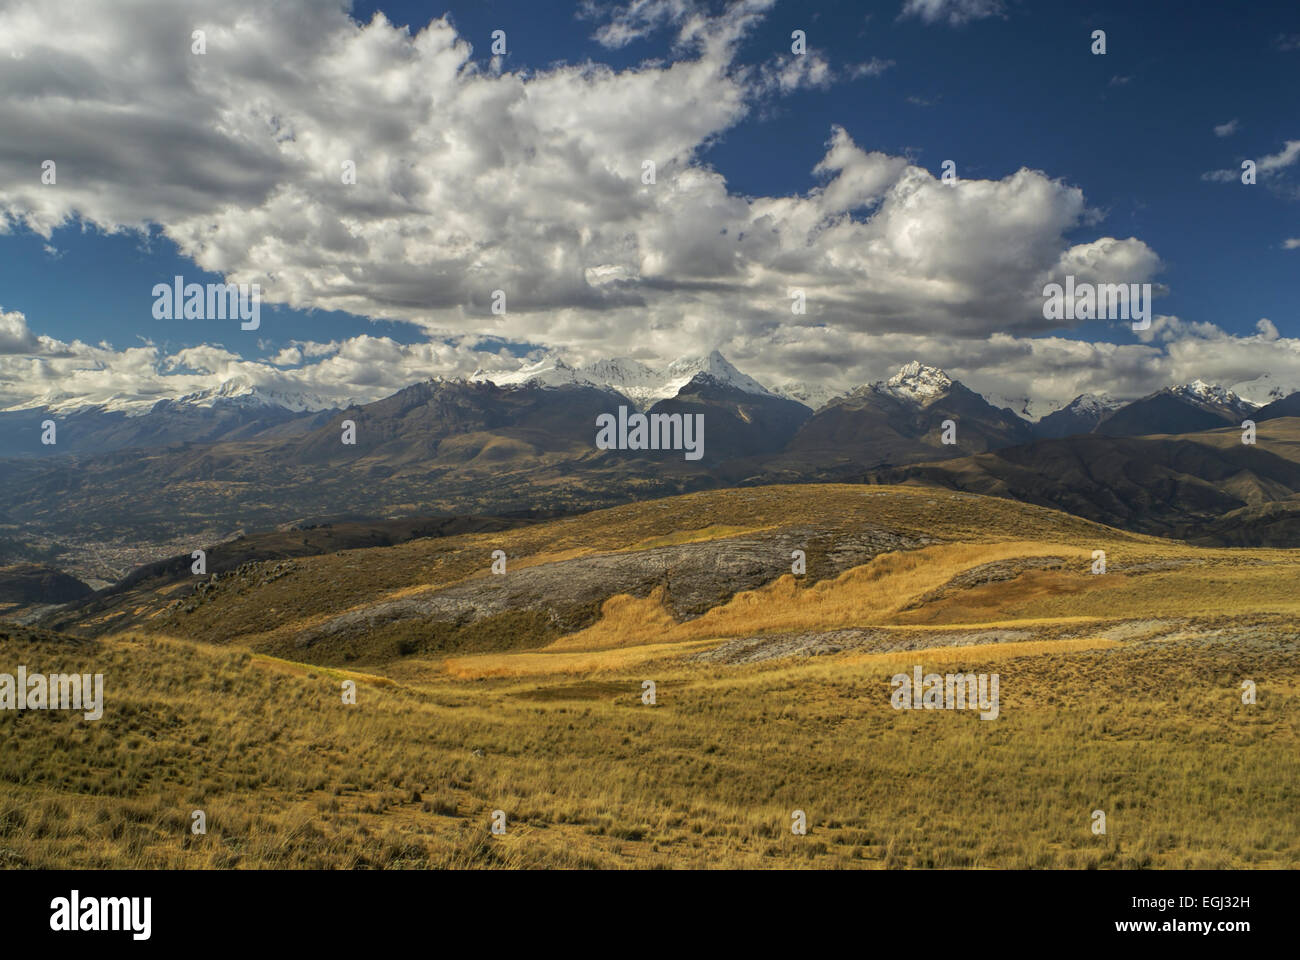 Picturesque view of clouds casting shadows on Peruvian Cordillera Negra Stock Photo